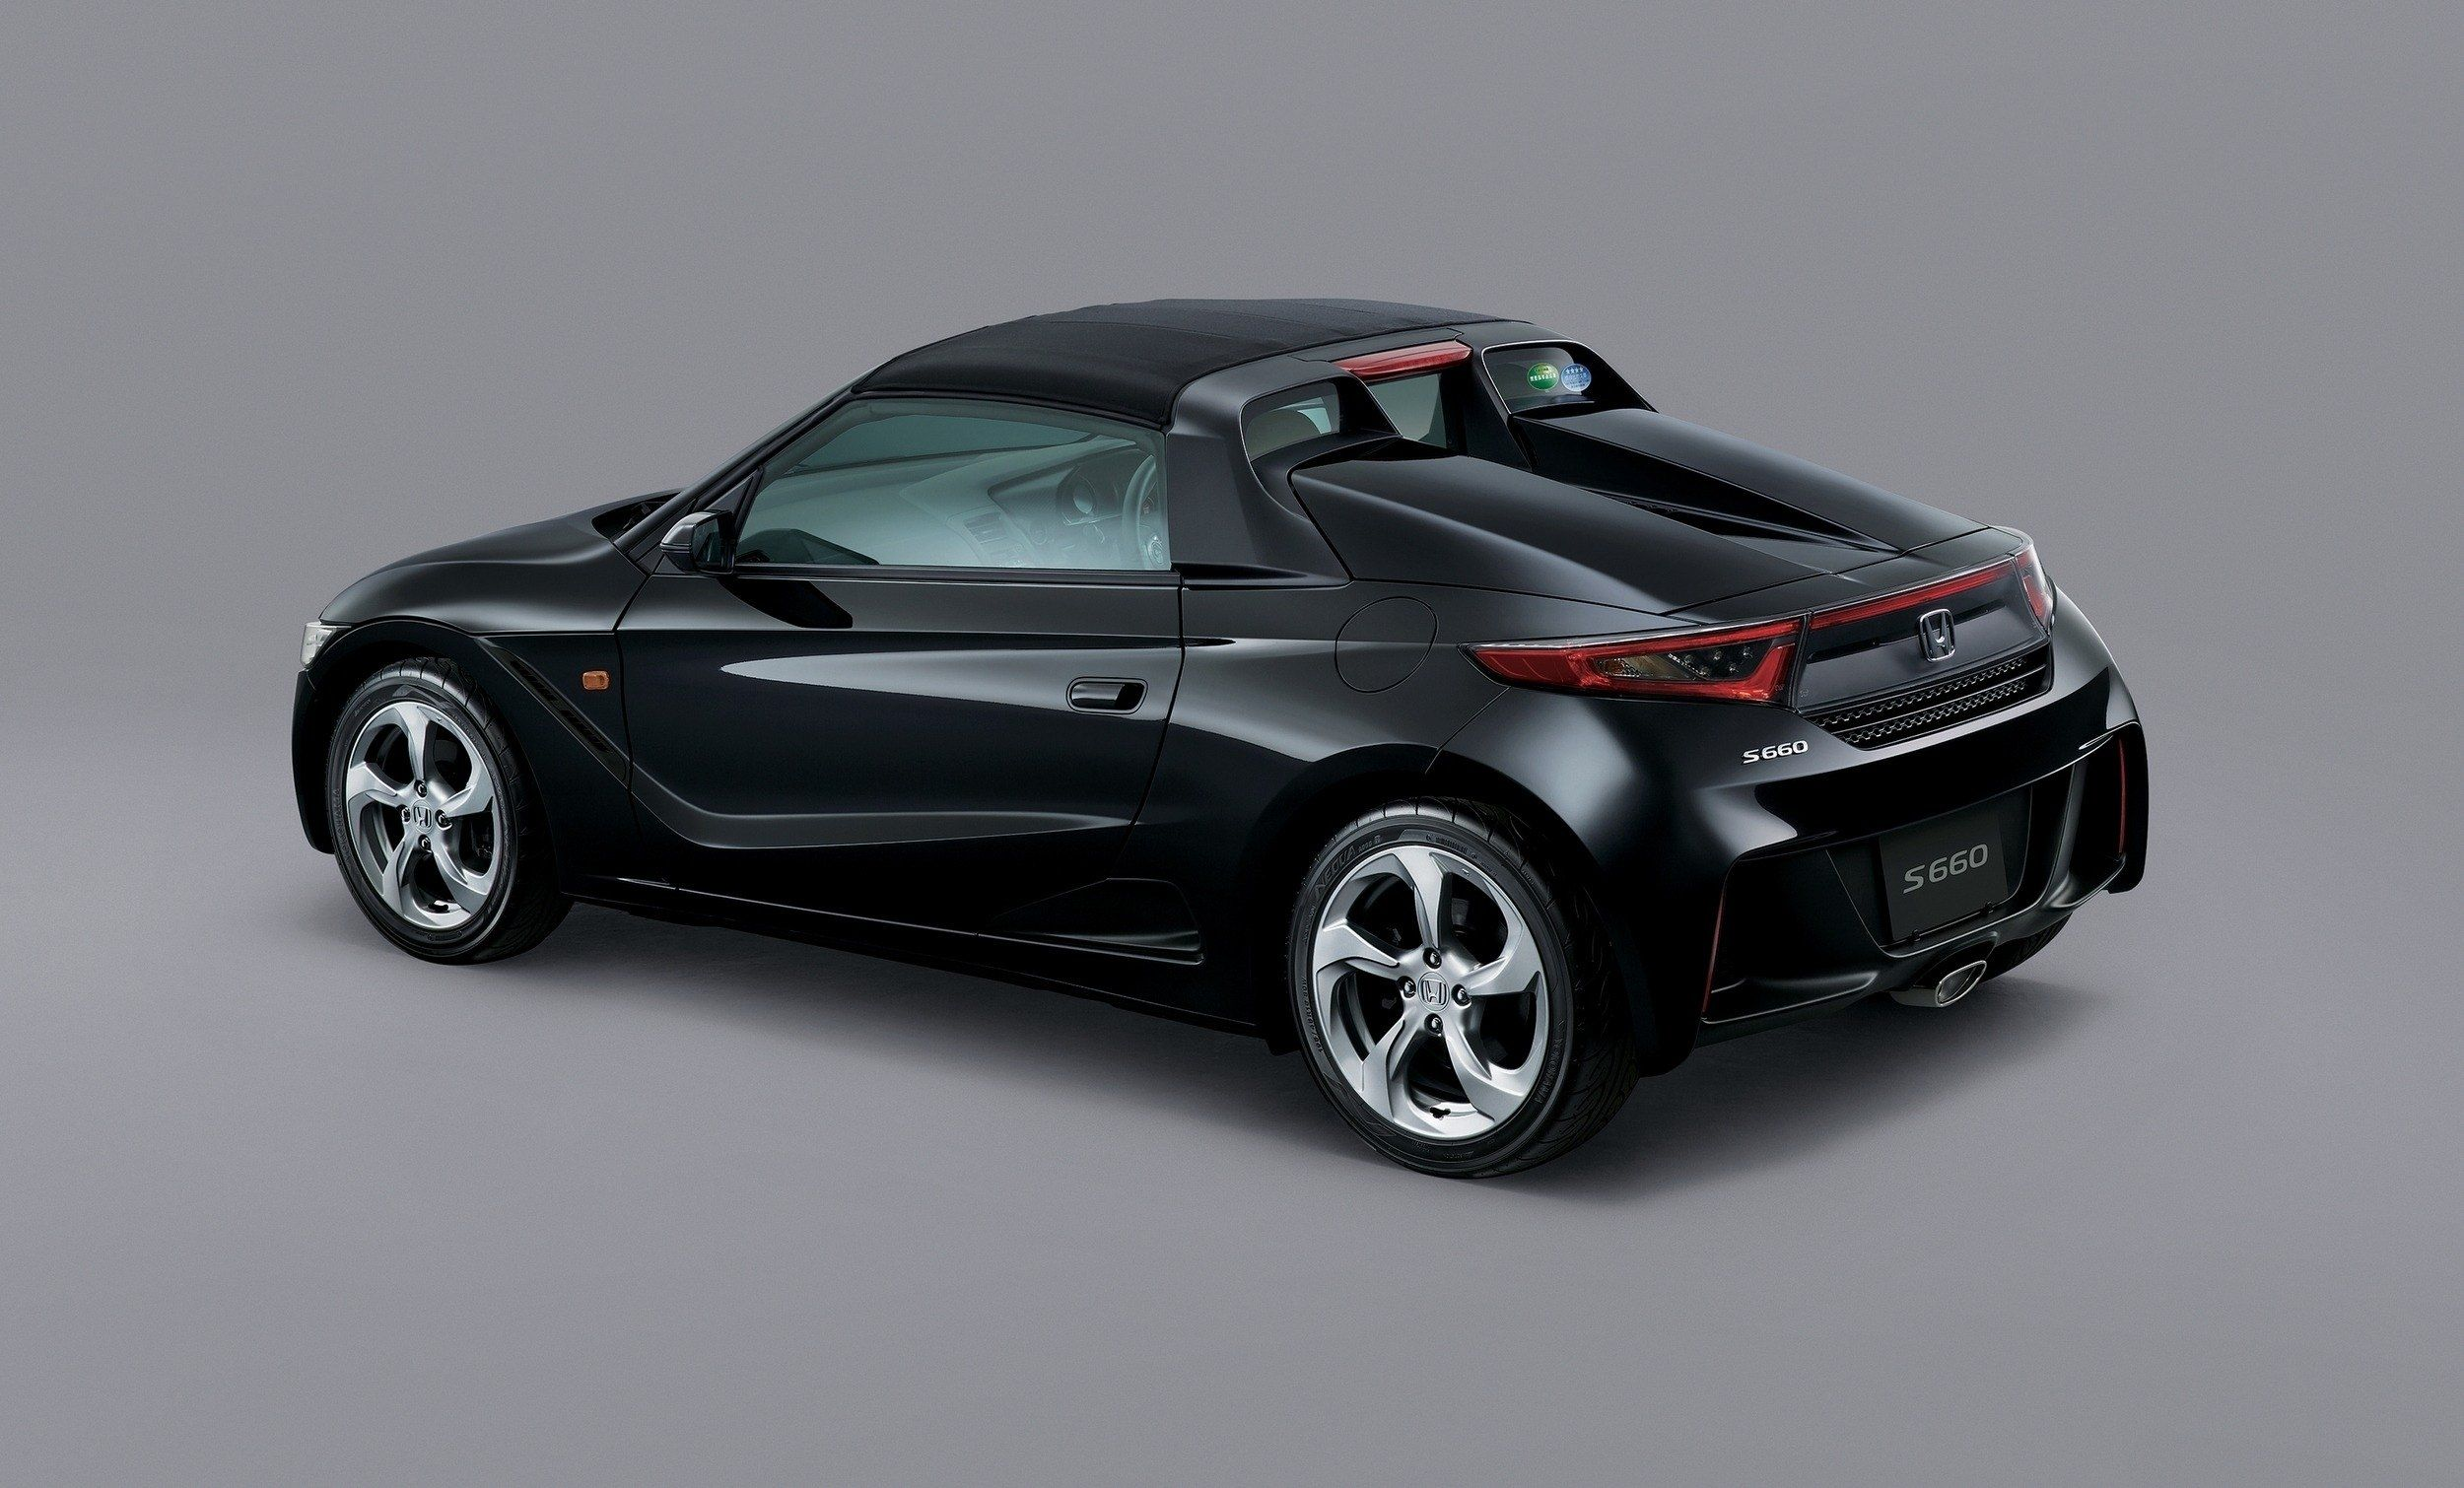 2019 Honda S660 Review and Specs - Motor Show Girls